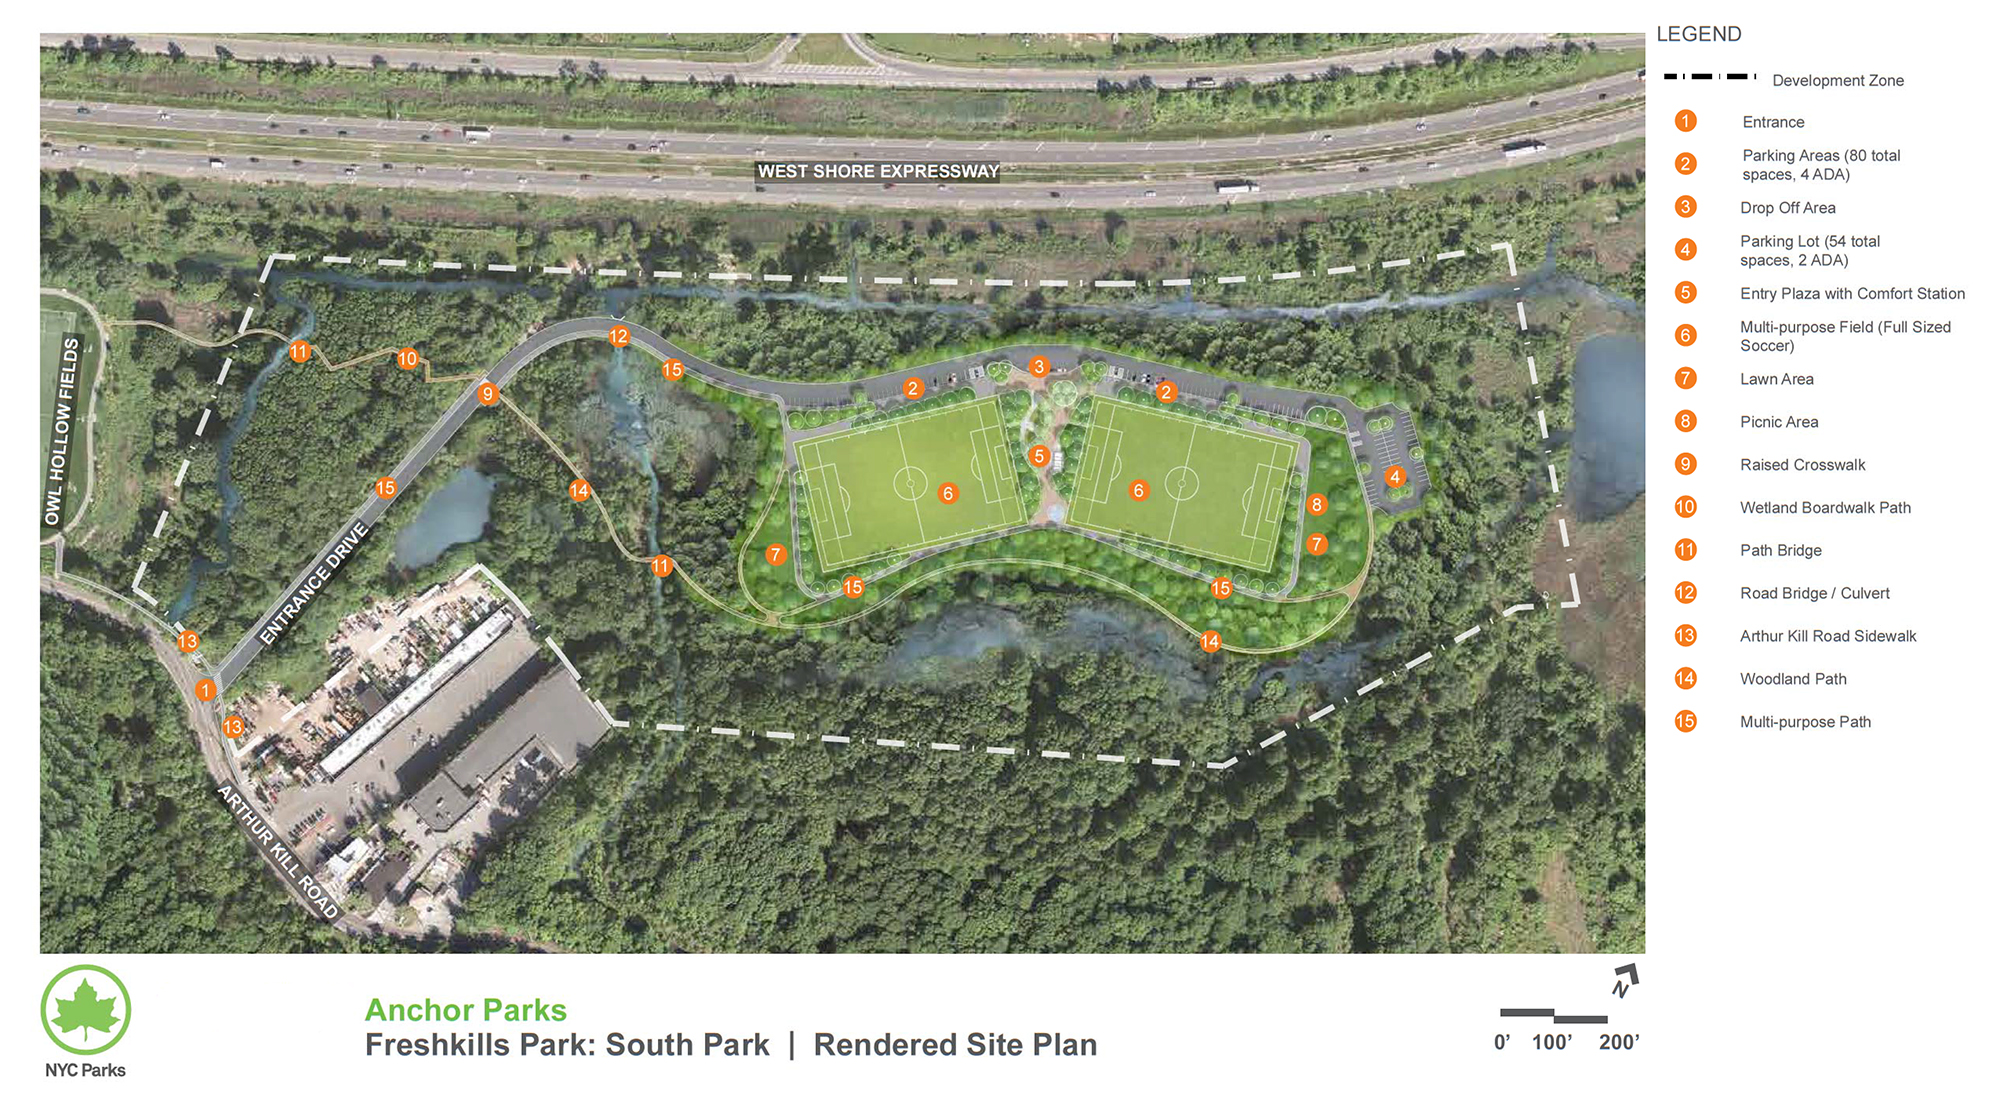 Design of Freshkills South Park Synthetic Turf Fields and Landscape Construction